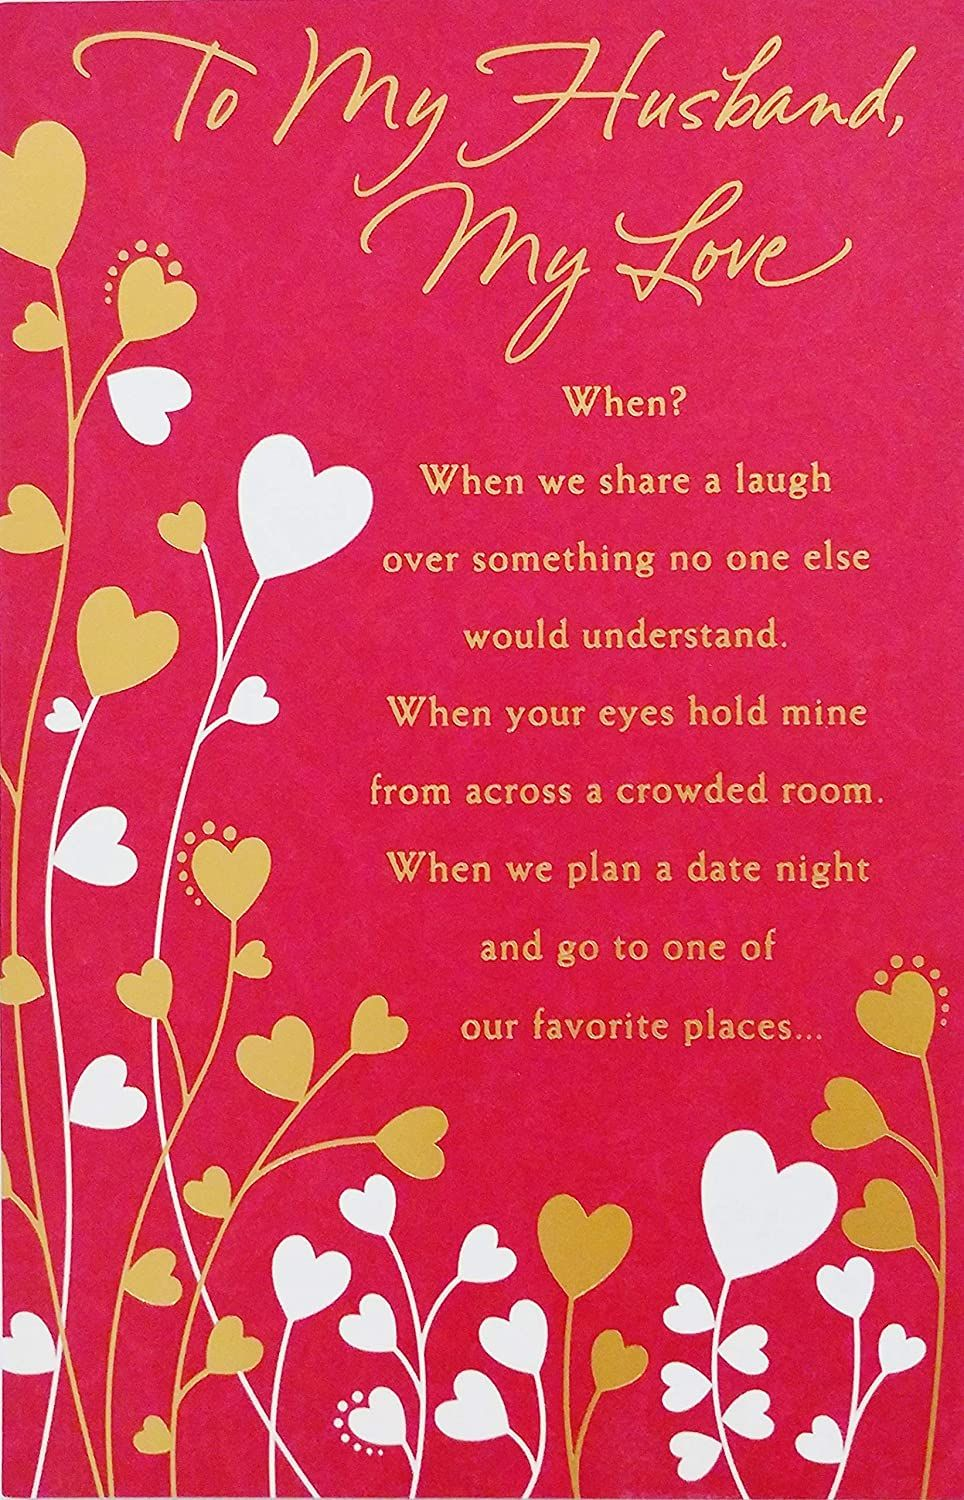 My Love Card In 2021 Love Cards For Husband Valentines Card For Husband Husband Birthday Card